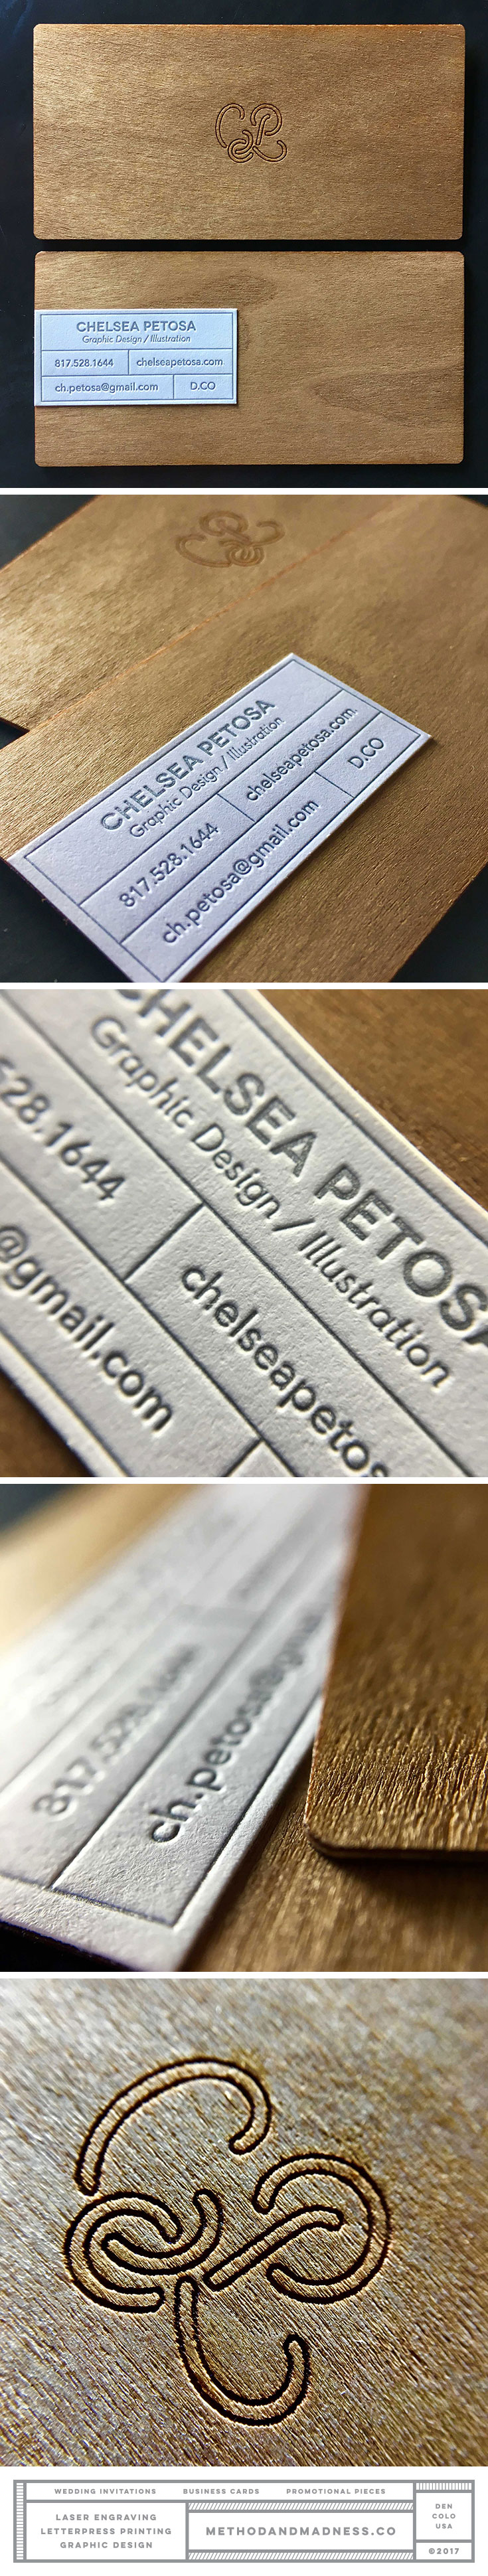 2 ply wood veneer business cards with laser engraved logo and